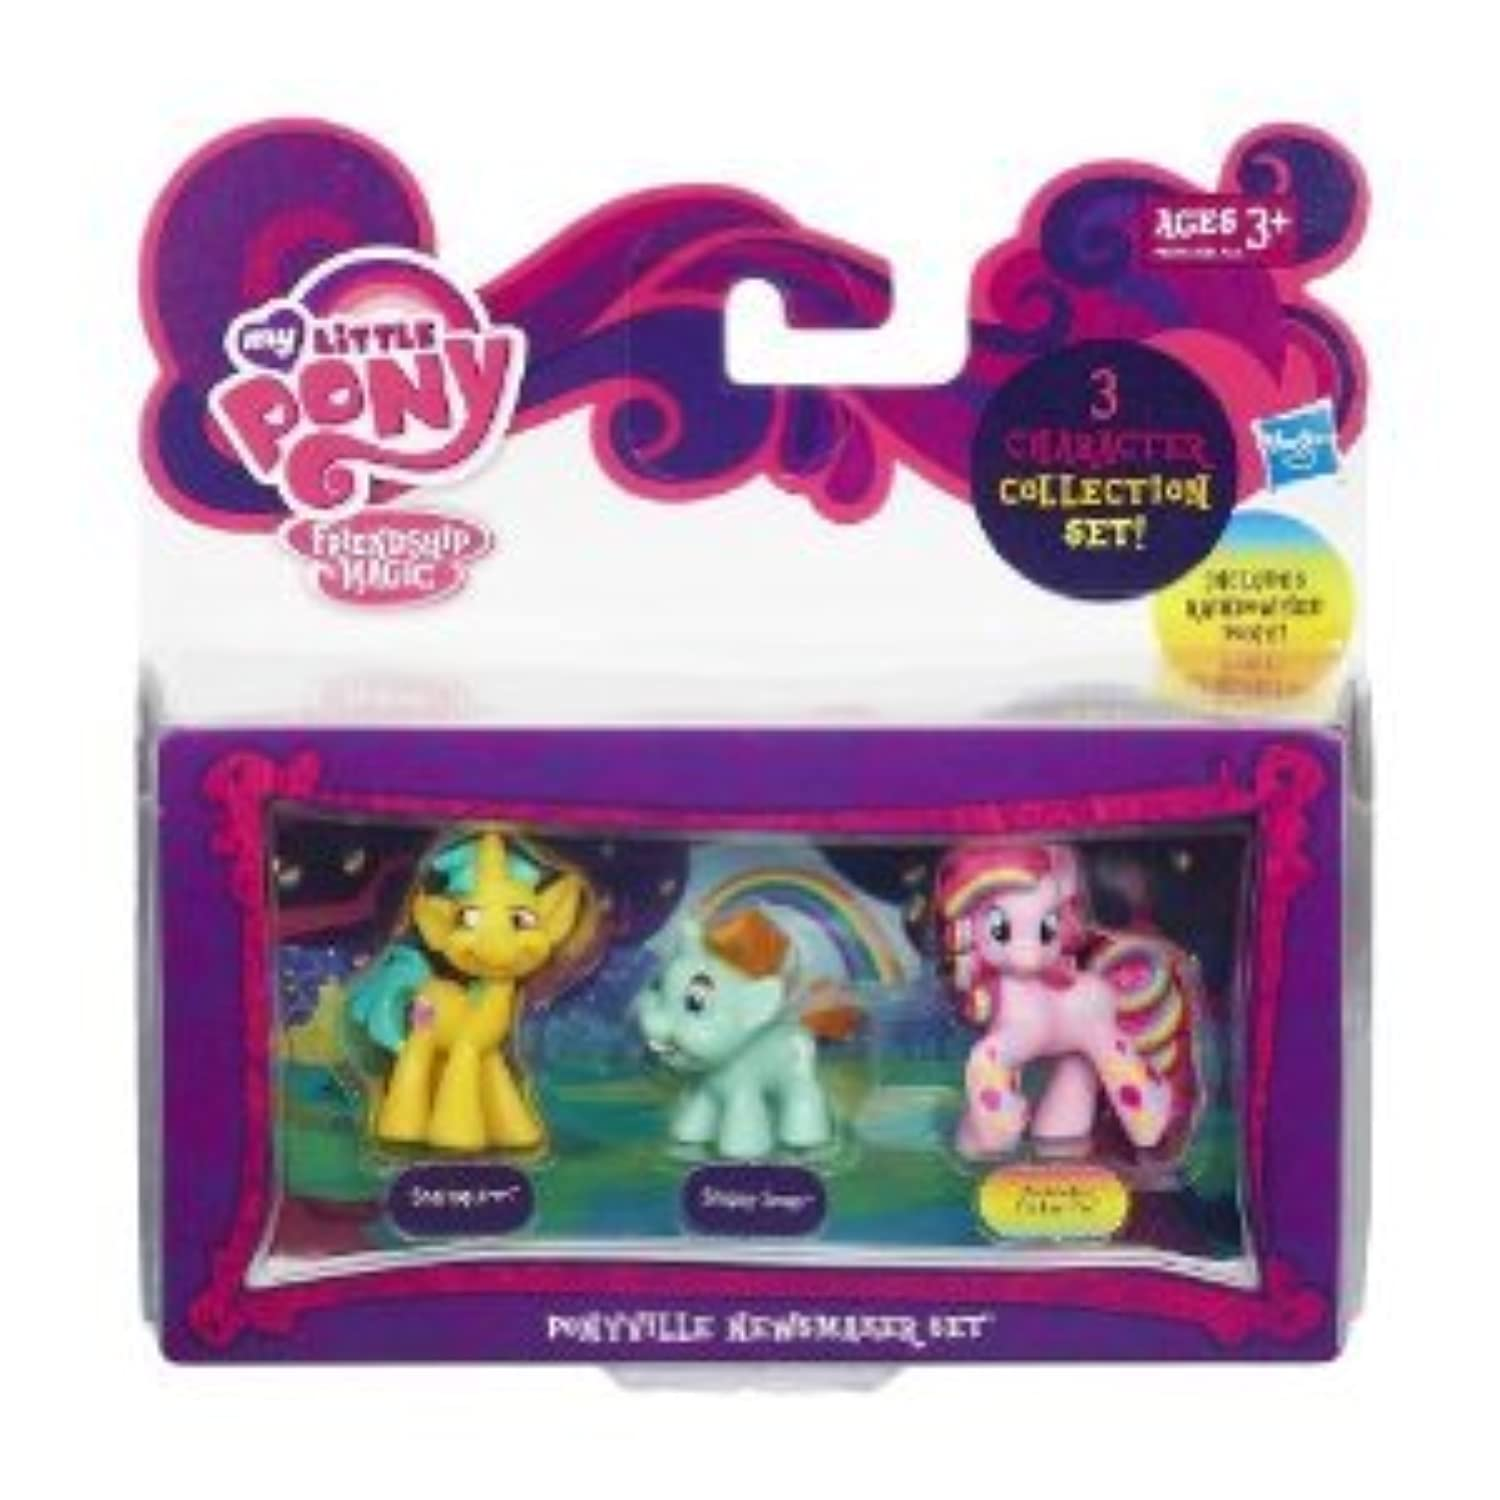 My Little Pony (マイリトルポニー) Friendship is Magic Ponyville Newsmaker 3-Pack Snailsquirm, Snipsy Snap & Rainbowfied Pinkie Pie ドール 人形 フィギュア(並行輸入)